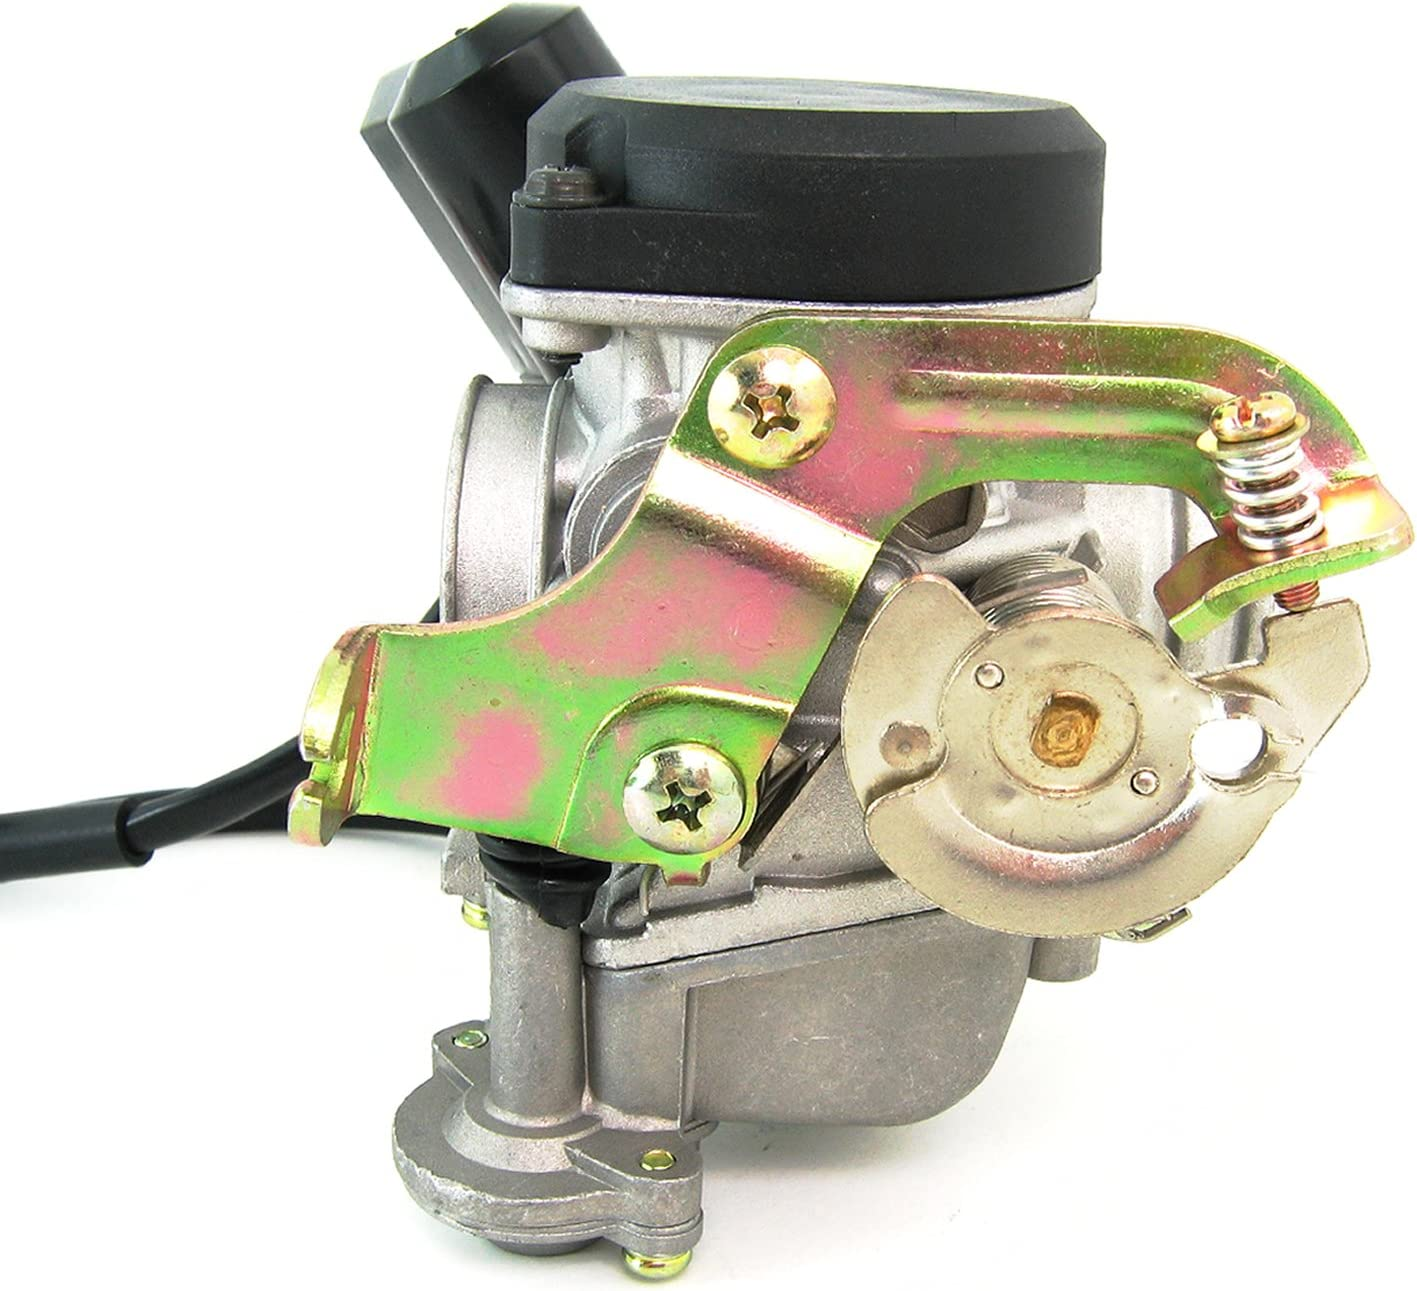 Sento 50/ Carburatore di ricambio 16/mm per Kreidler Flory 50/4/tempi Kymco People S 50 Agility 50/4T Yager GT 50 tempi